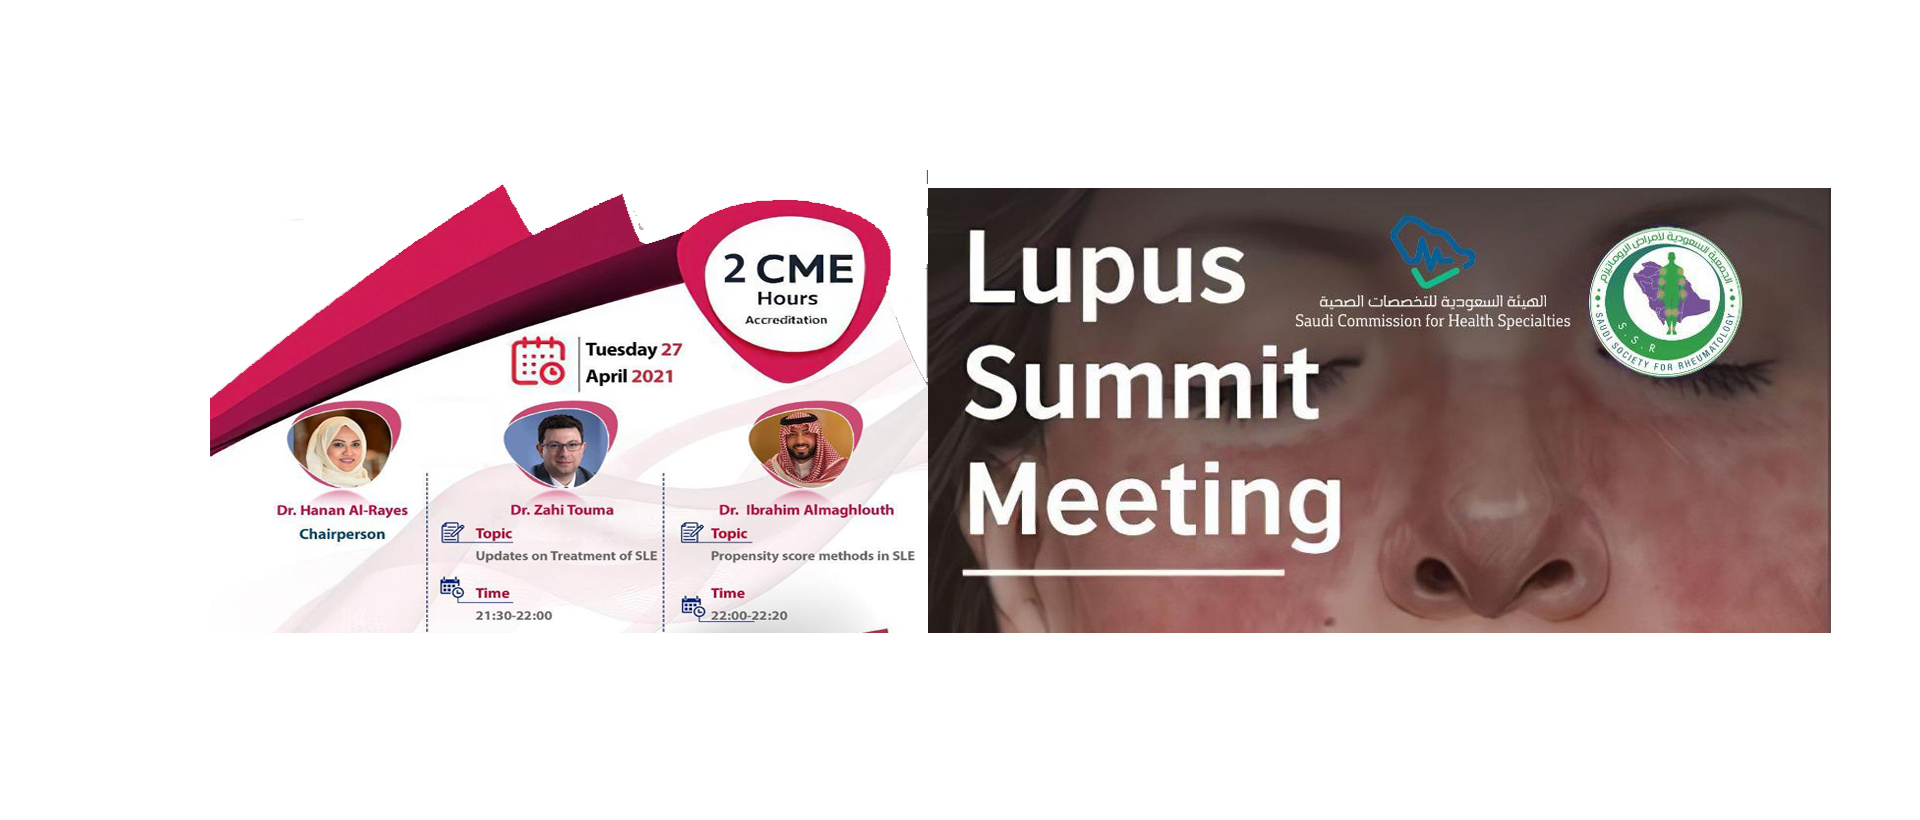 lupus summit meeting